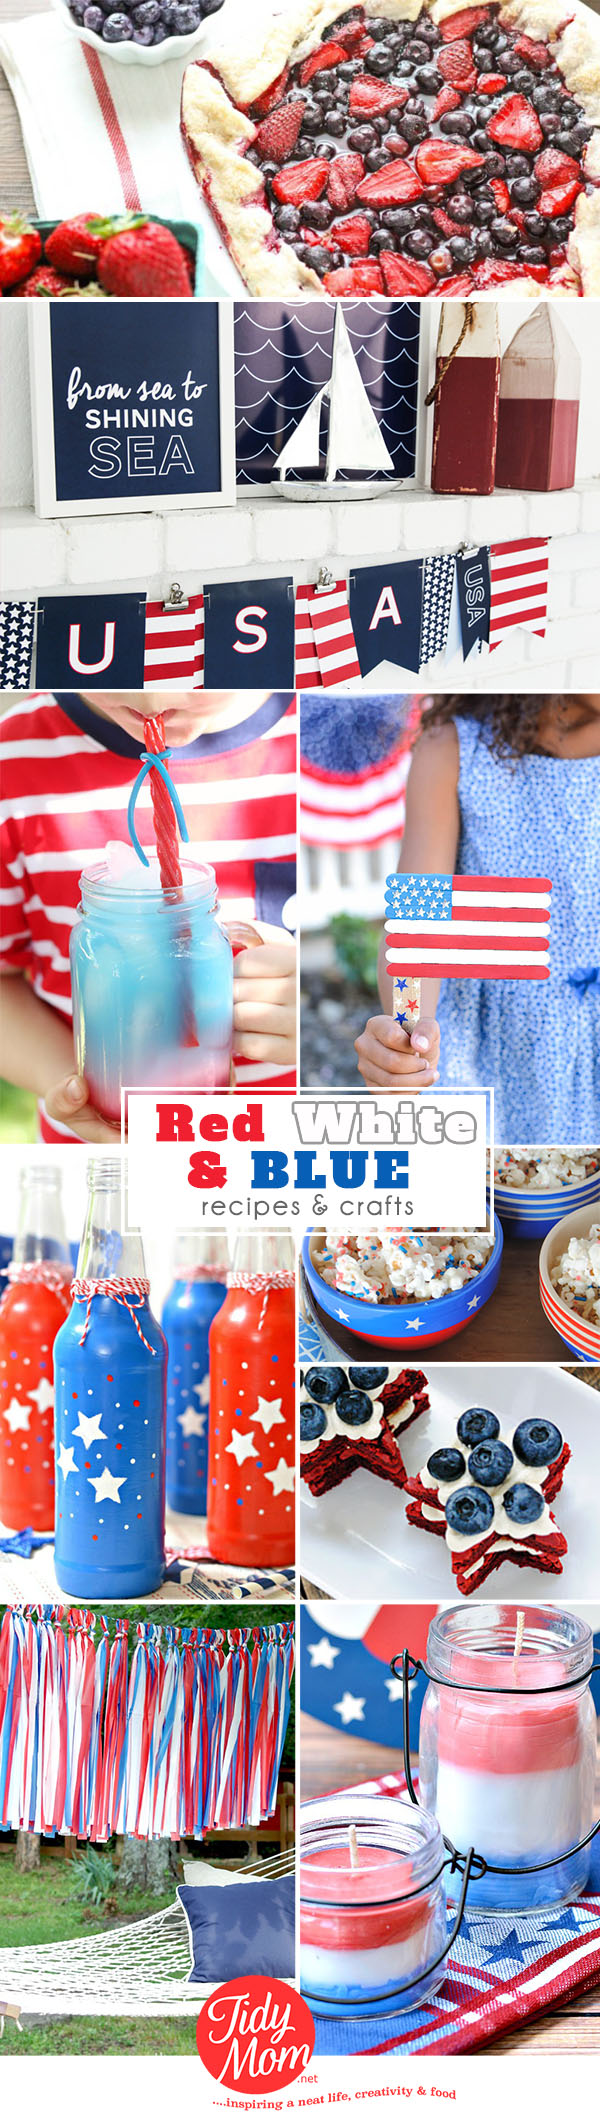 Three Cheers for the Red, White and Blue!! find patriotic recipes and craft ideas at TidyMom.net